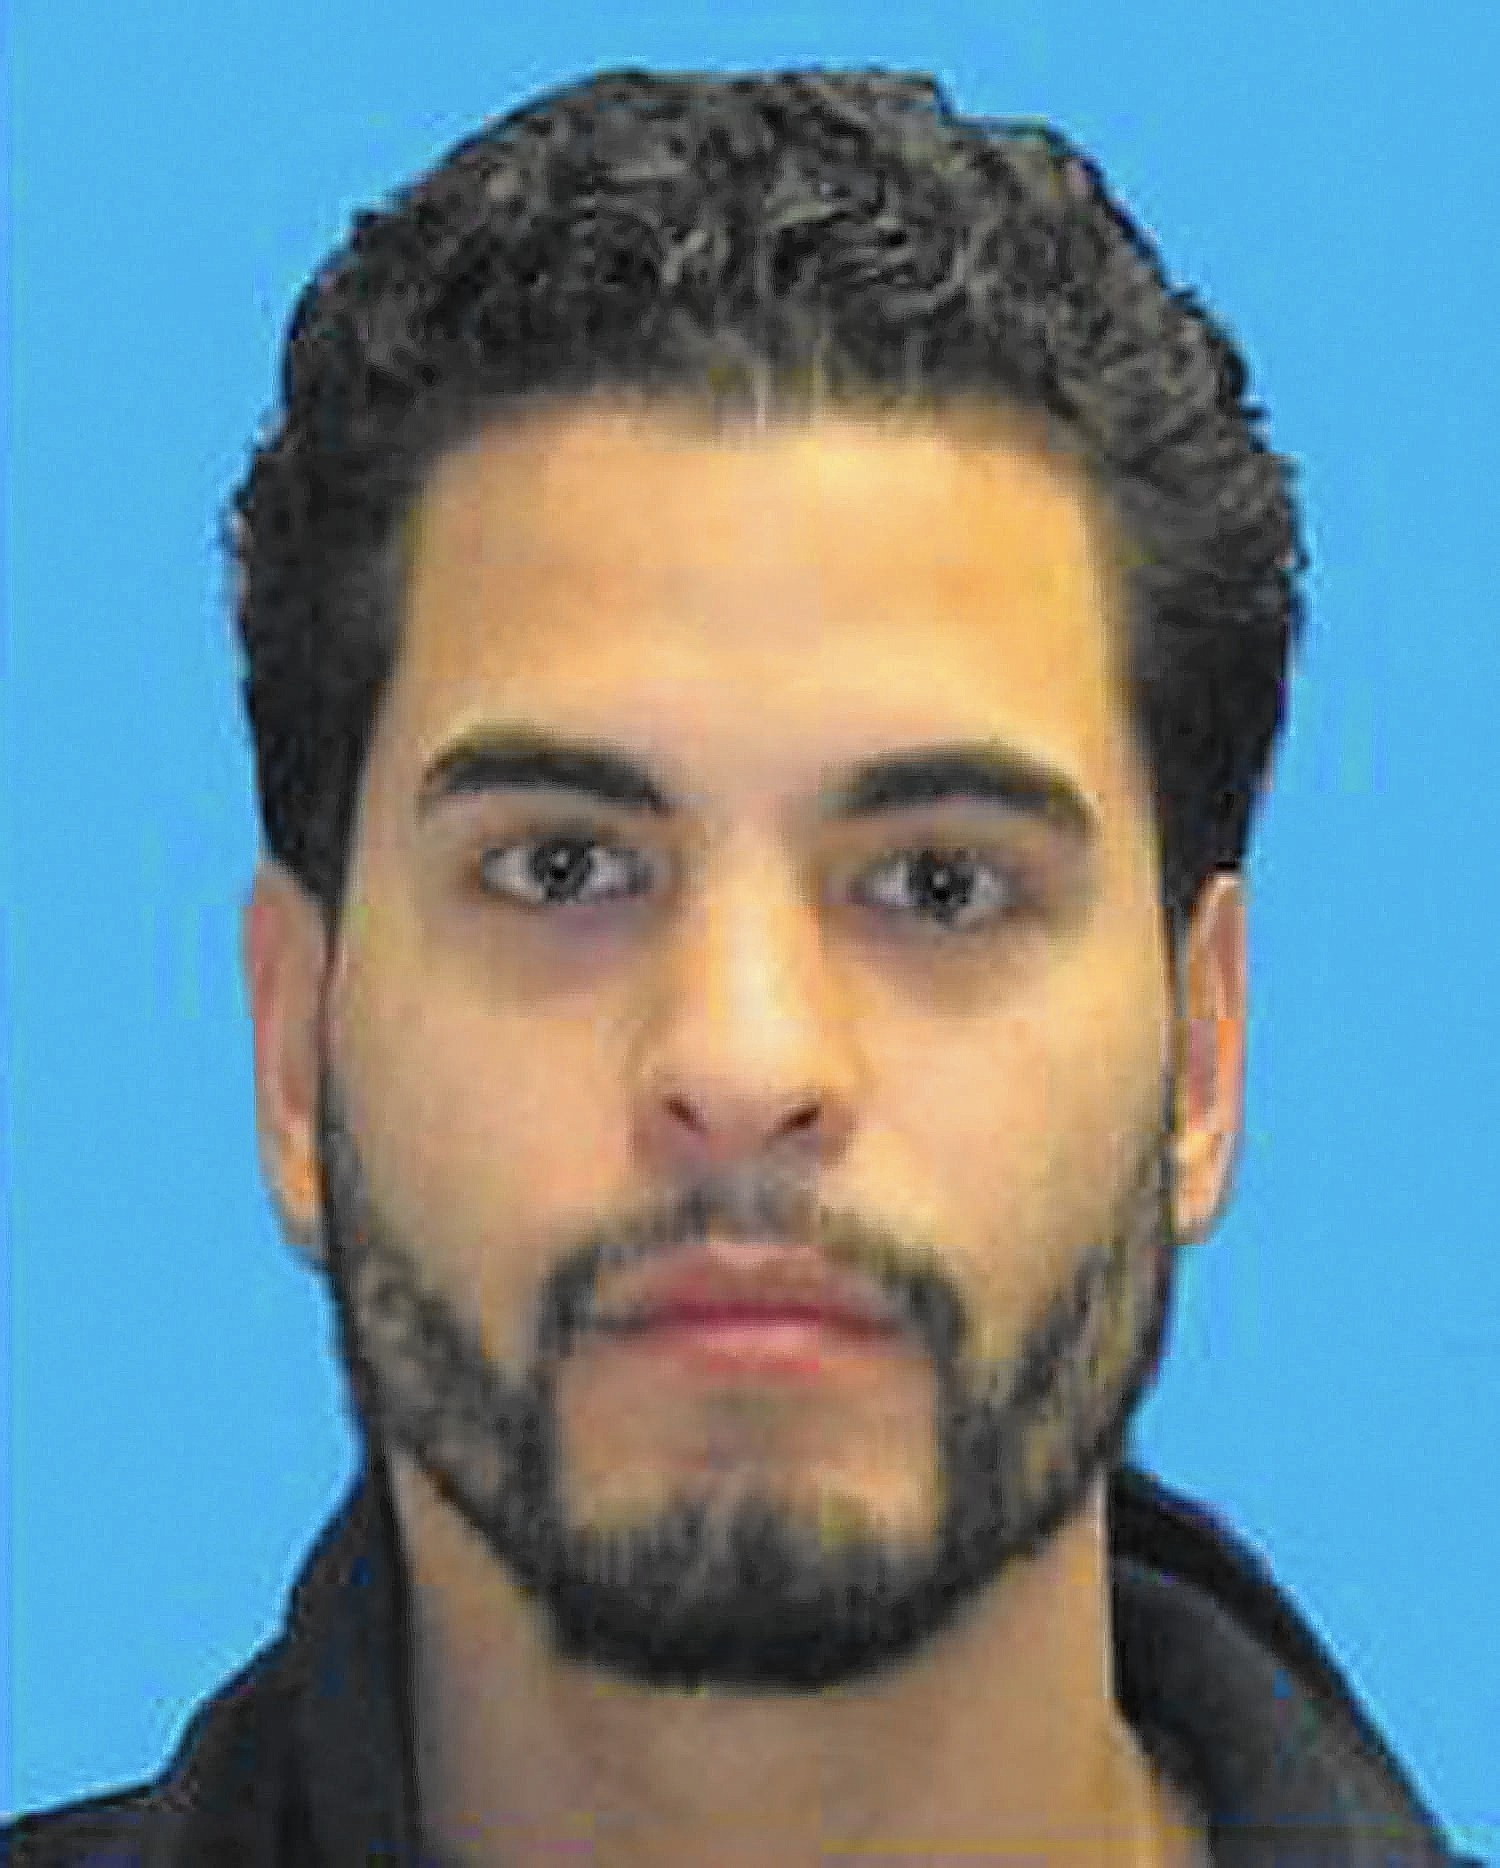 Police After Killing Family Adam Matos Sold Their Dogs On Craigslist The Morning Call